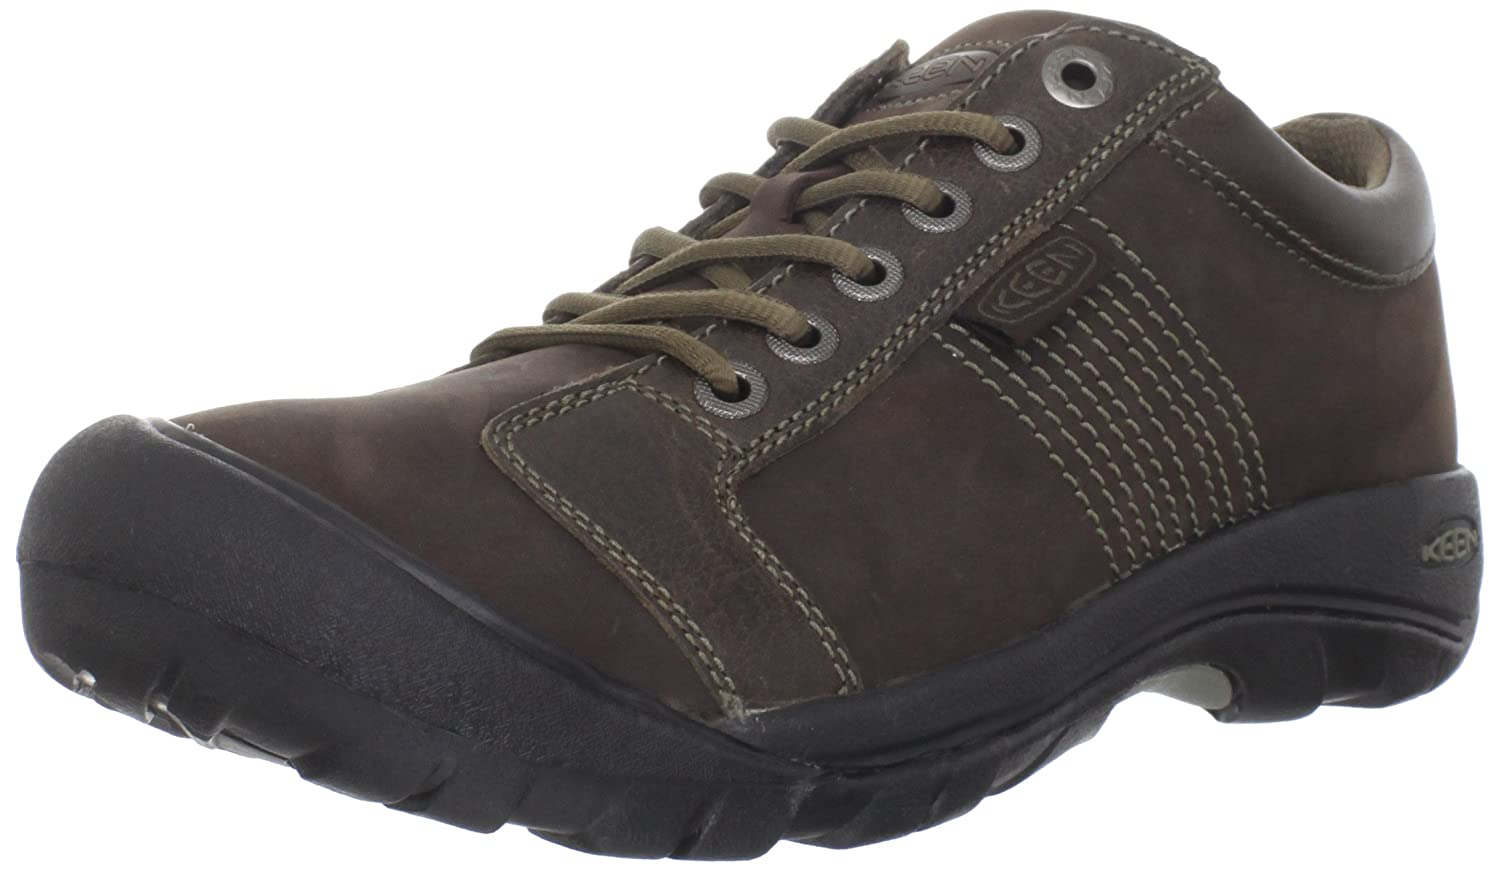 KEEN AUSTIN M Derby Chaussures à lacets pour (Chocolate homme 44 EU|Braun (Chocolate pour Brown) ac09bf